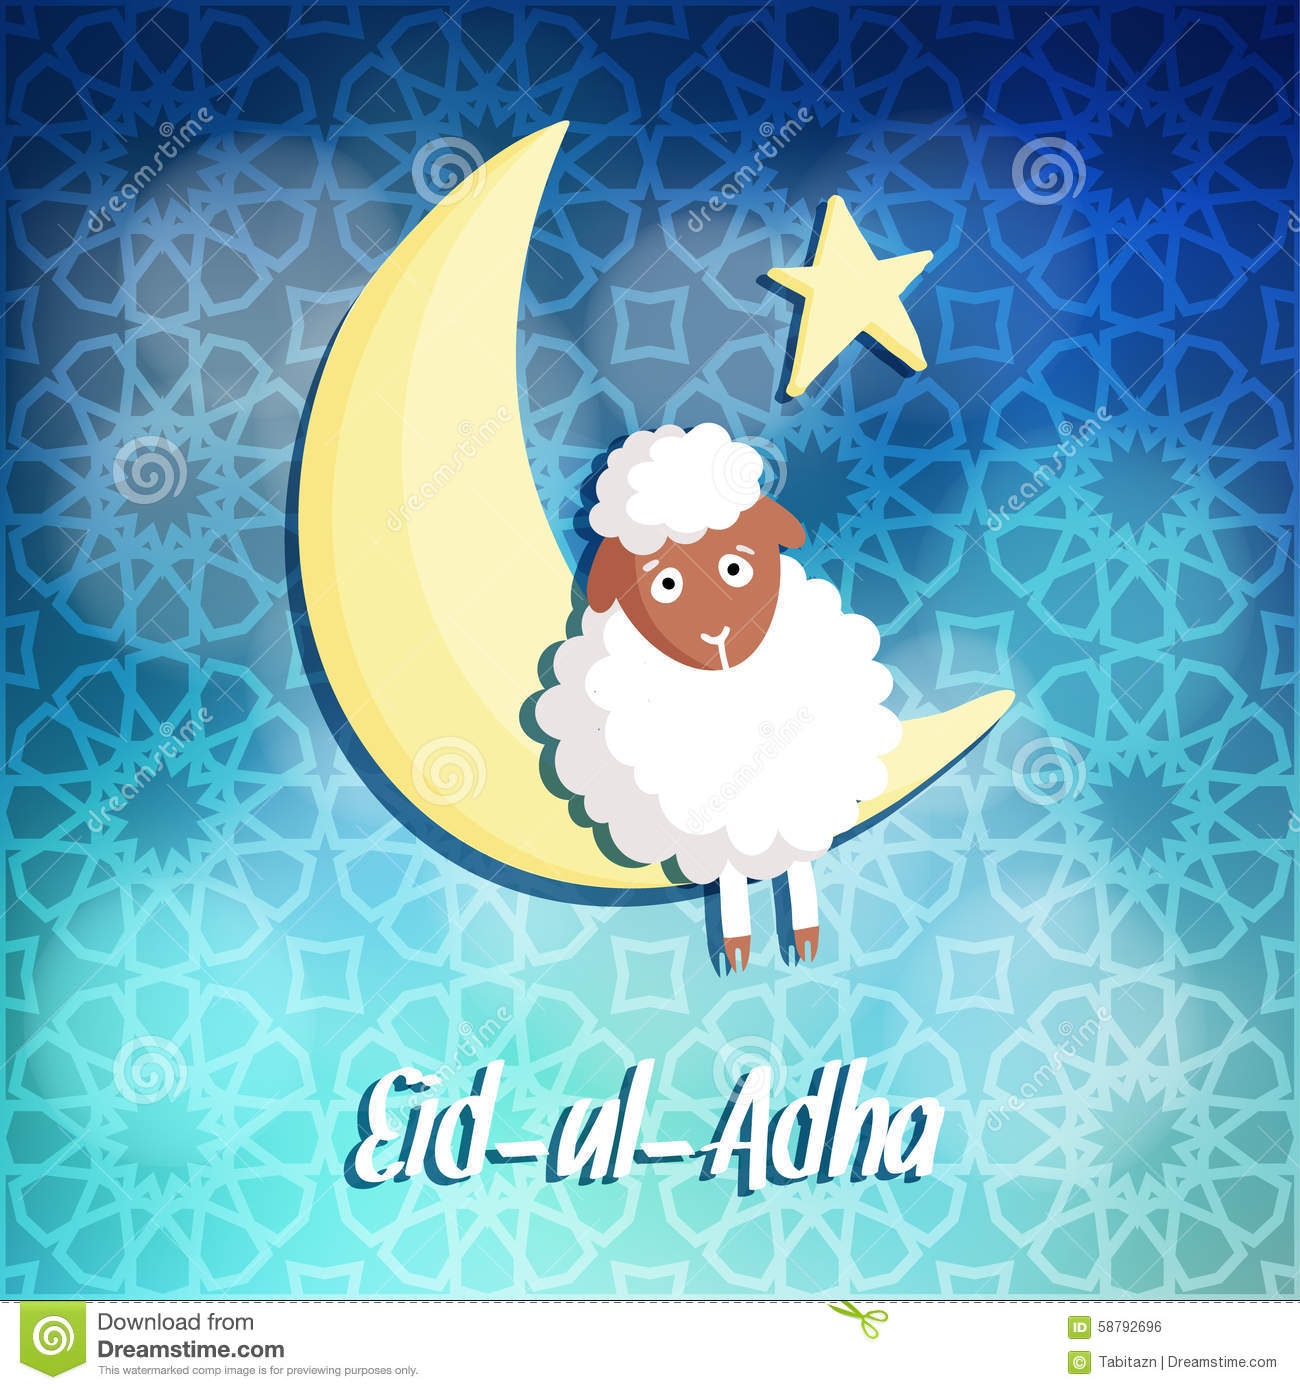 Eid Ul Adha Greeting Card With Sheep Moon Star Stock Vector